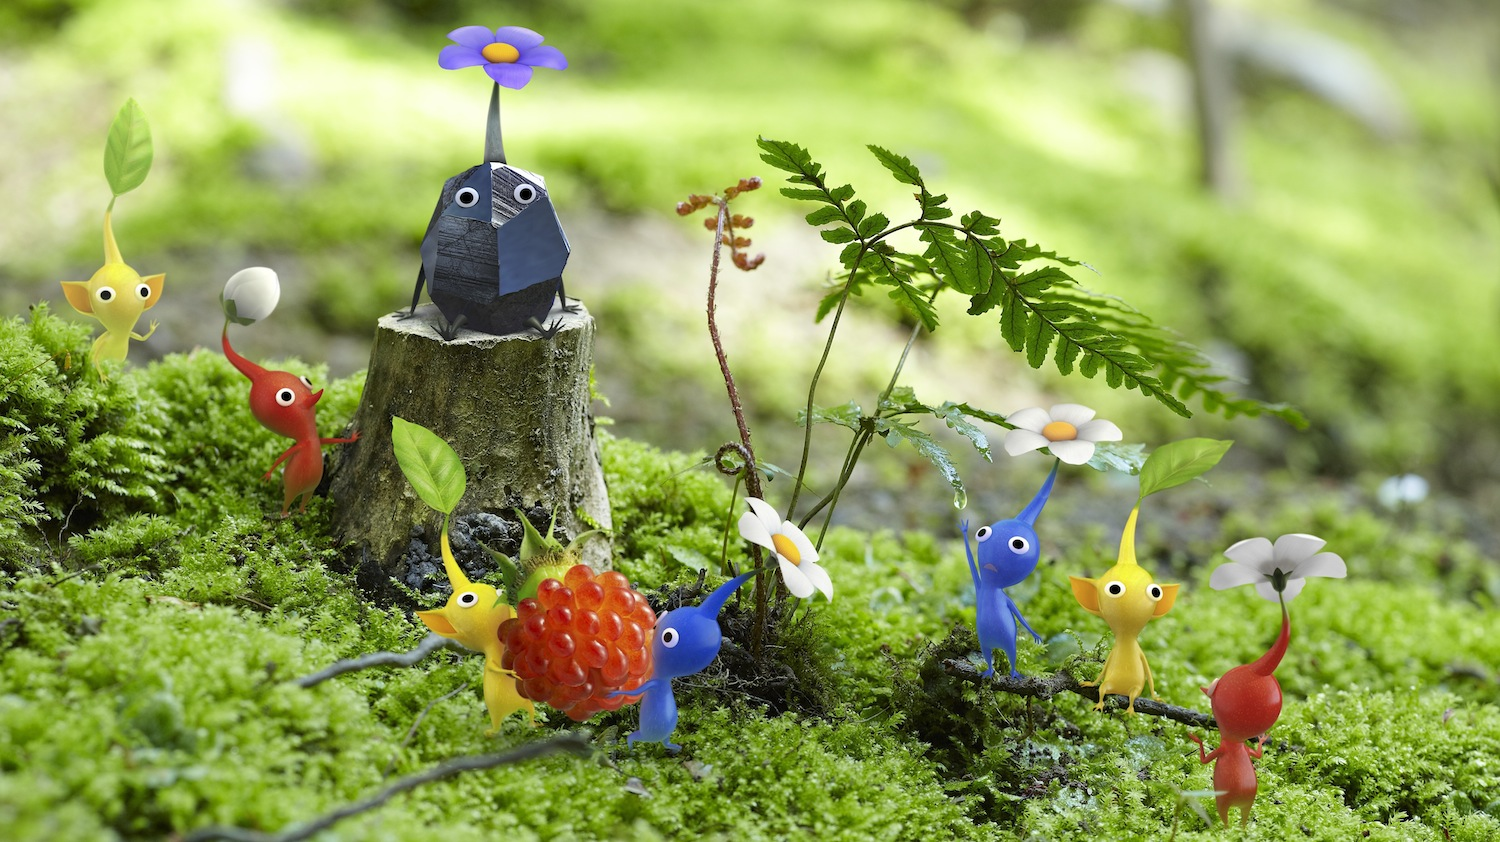 'Pikmin 3' to be more like the original game, not its sequel